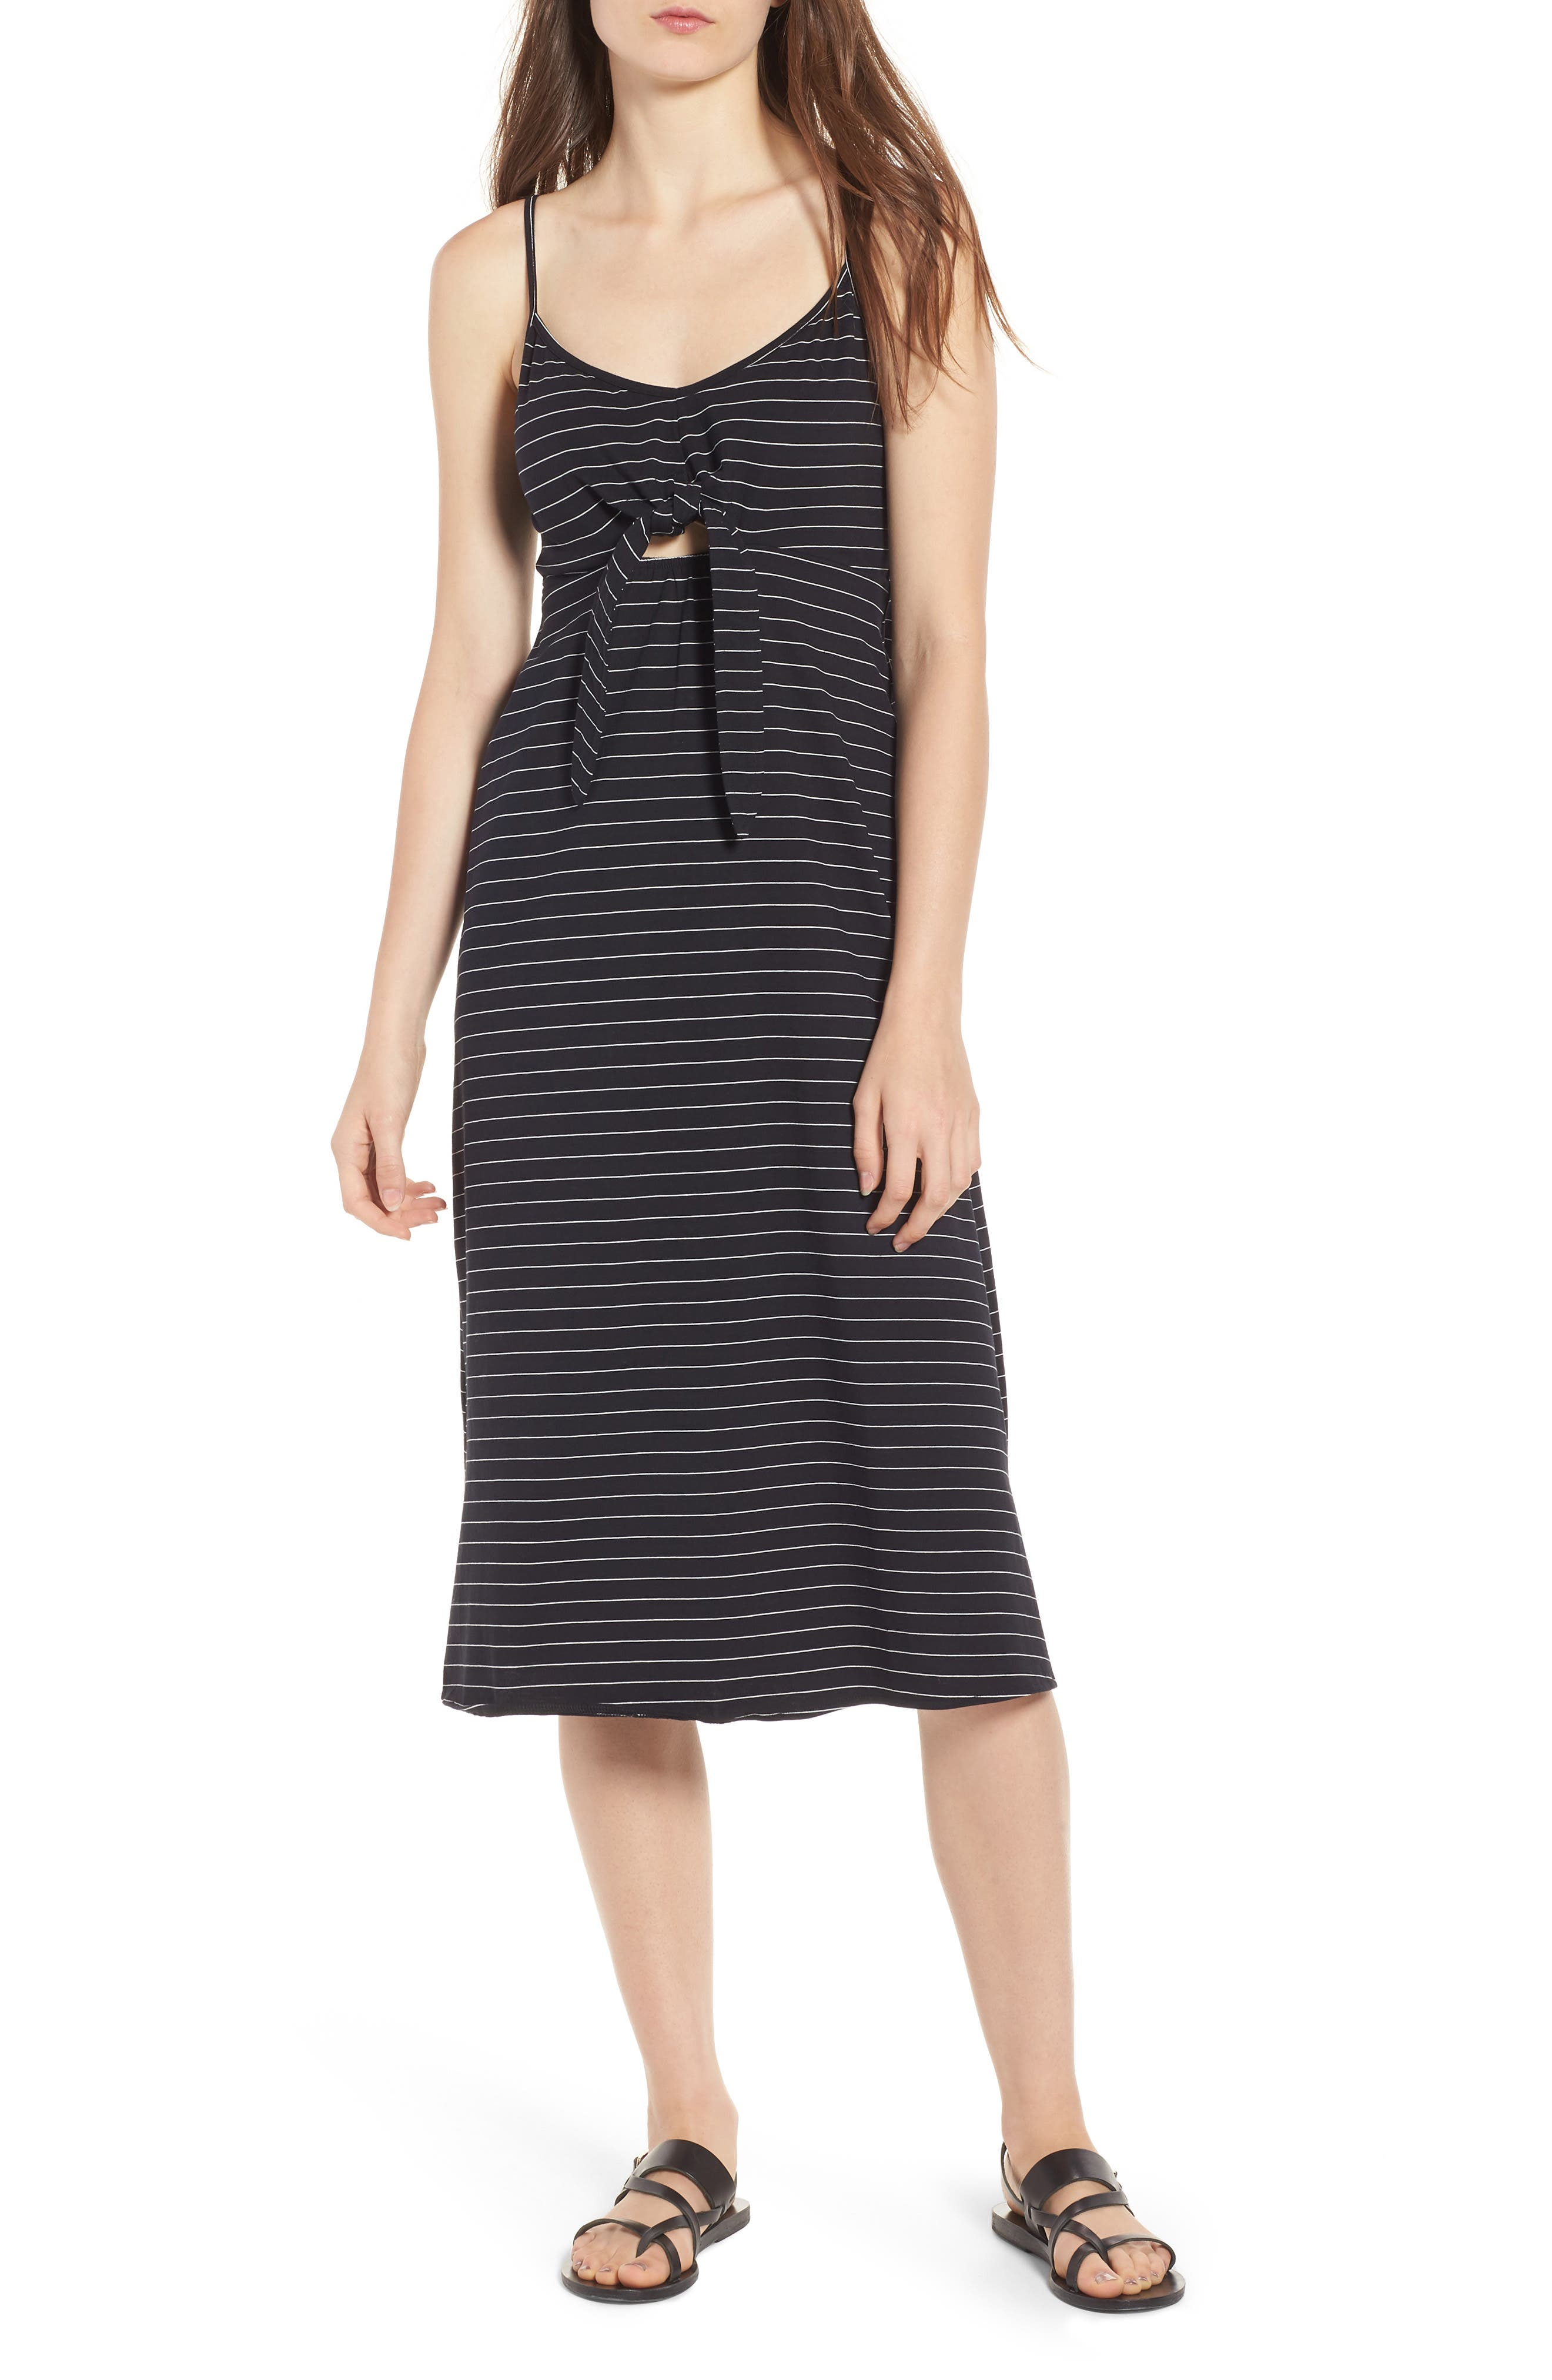 Suzanne Knot Front Dress,                             Main thumbnail 1, color,